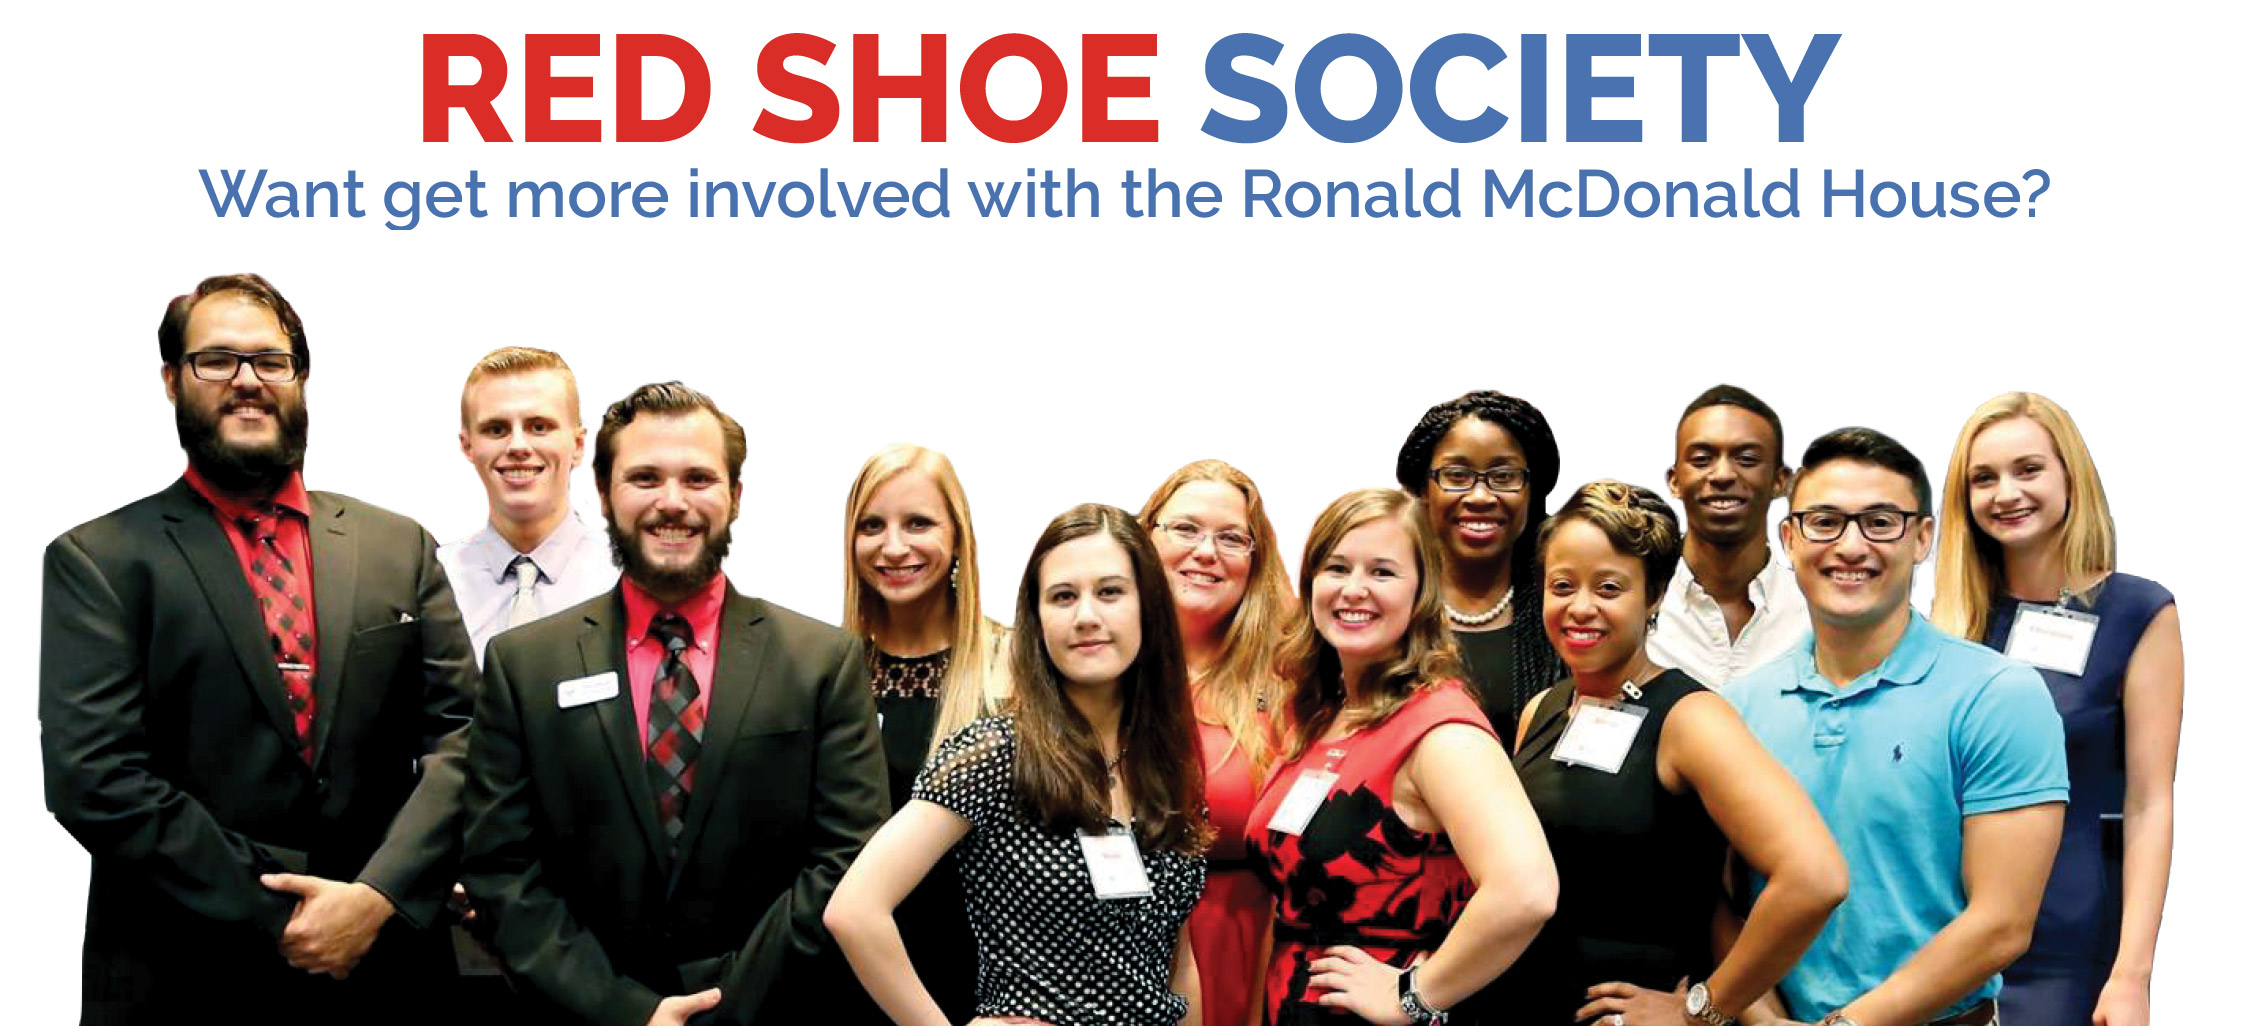 Red Shoe Society Image Banner with the whole team